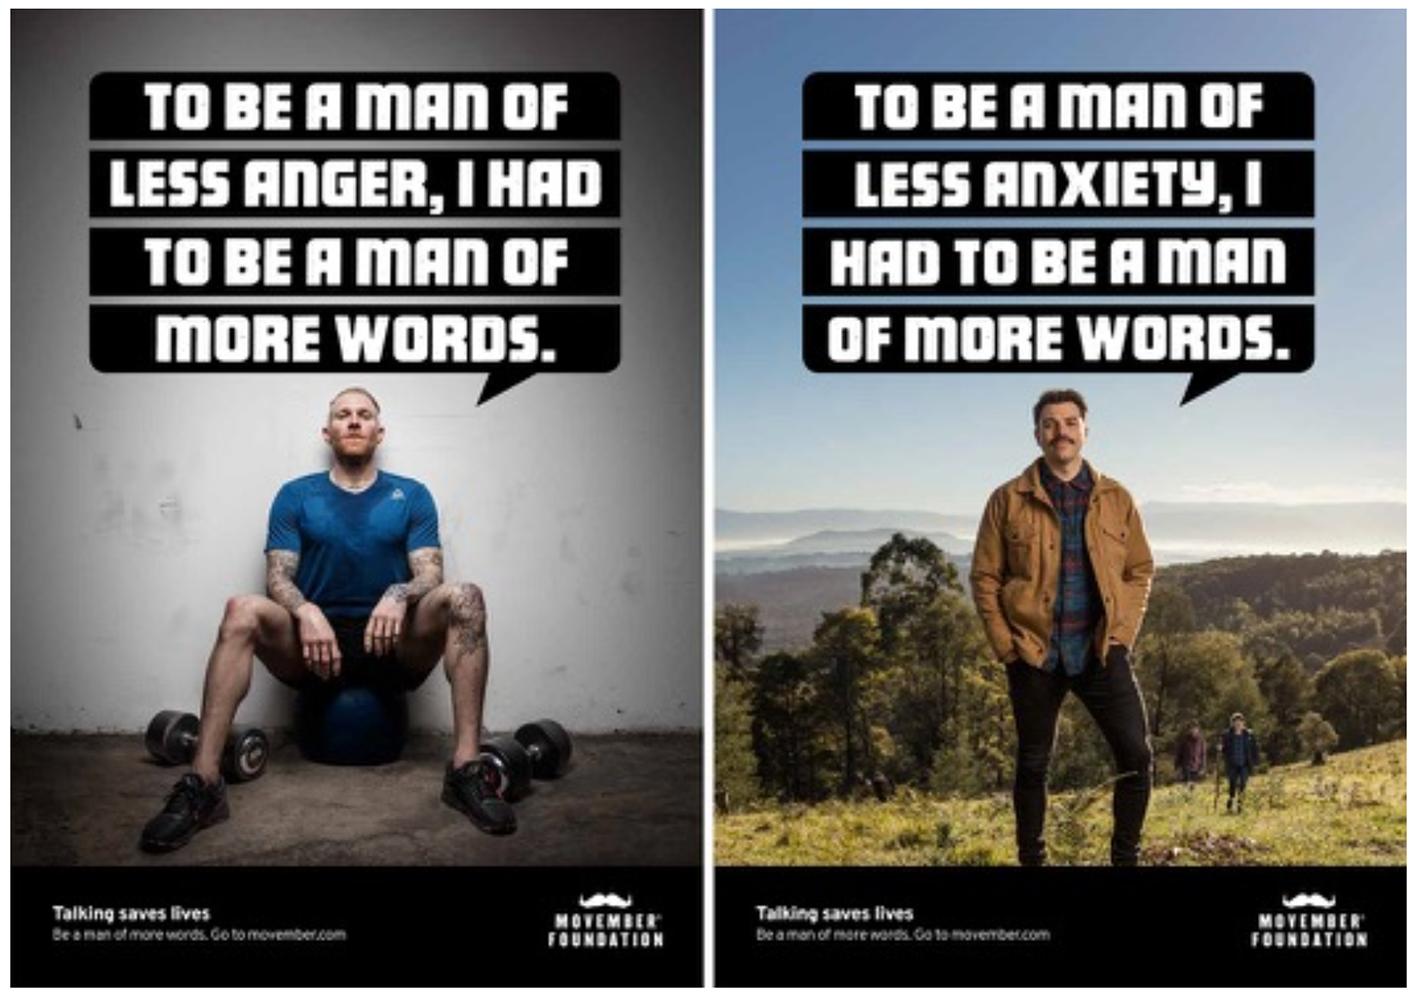 Movember print ad campaign featuring men in various locations